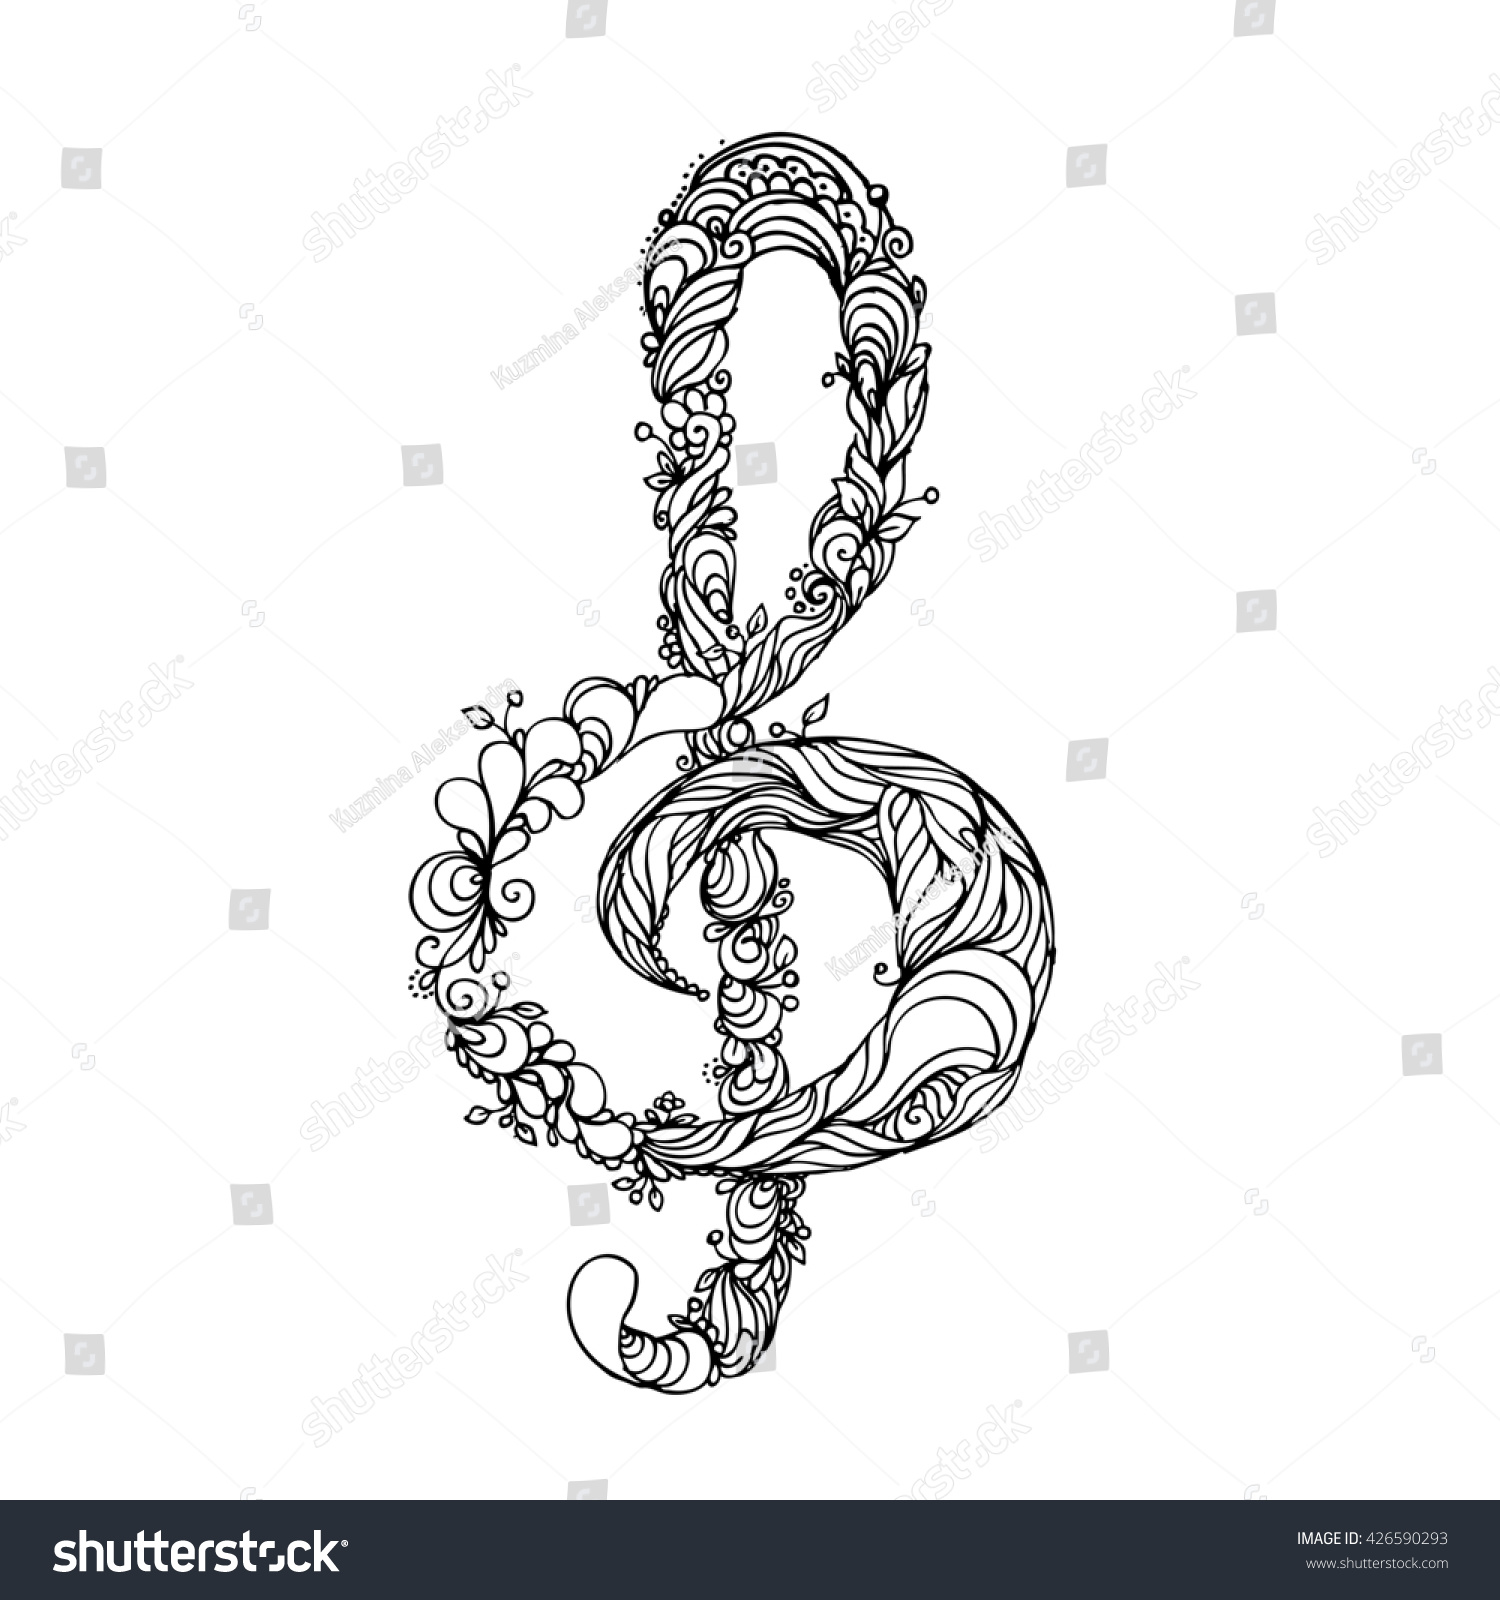 It's just a picture of Gutsy Treble Clef Coloring Page